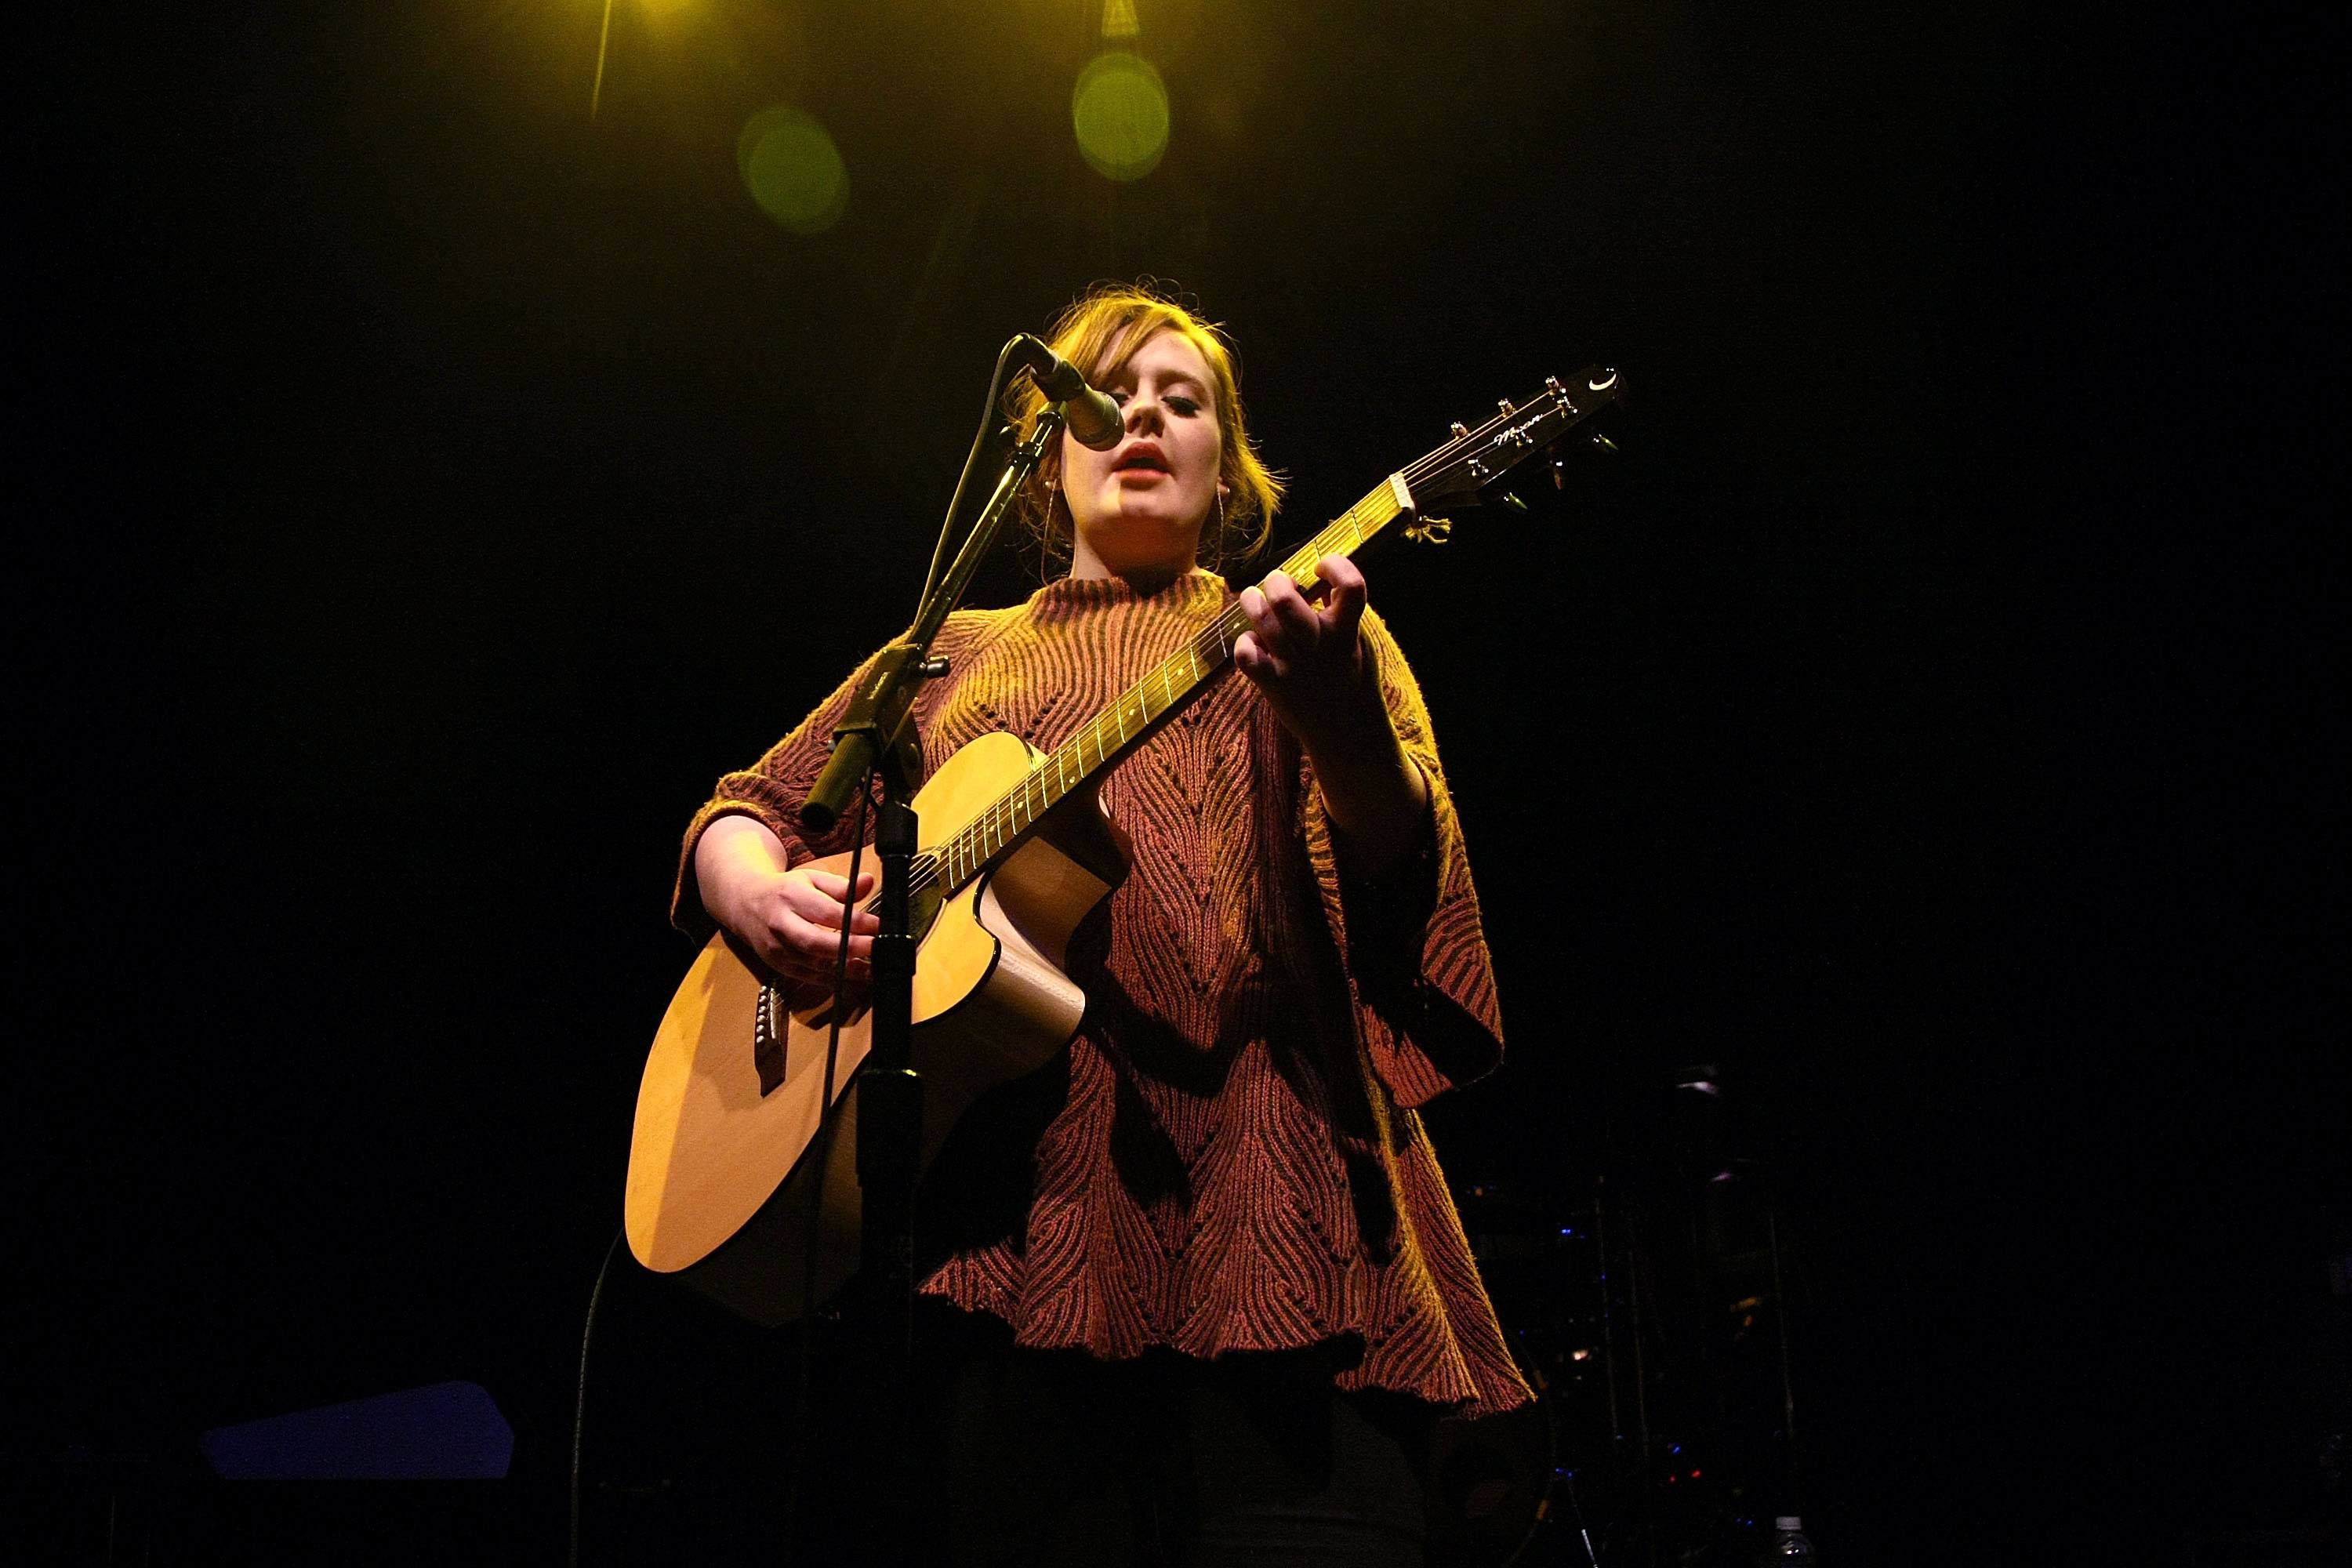 Adele performs at the 9:30 Club in Washington on Jan. 17, 2009.